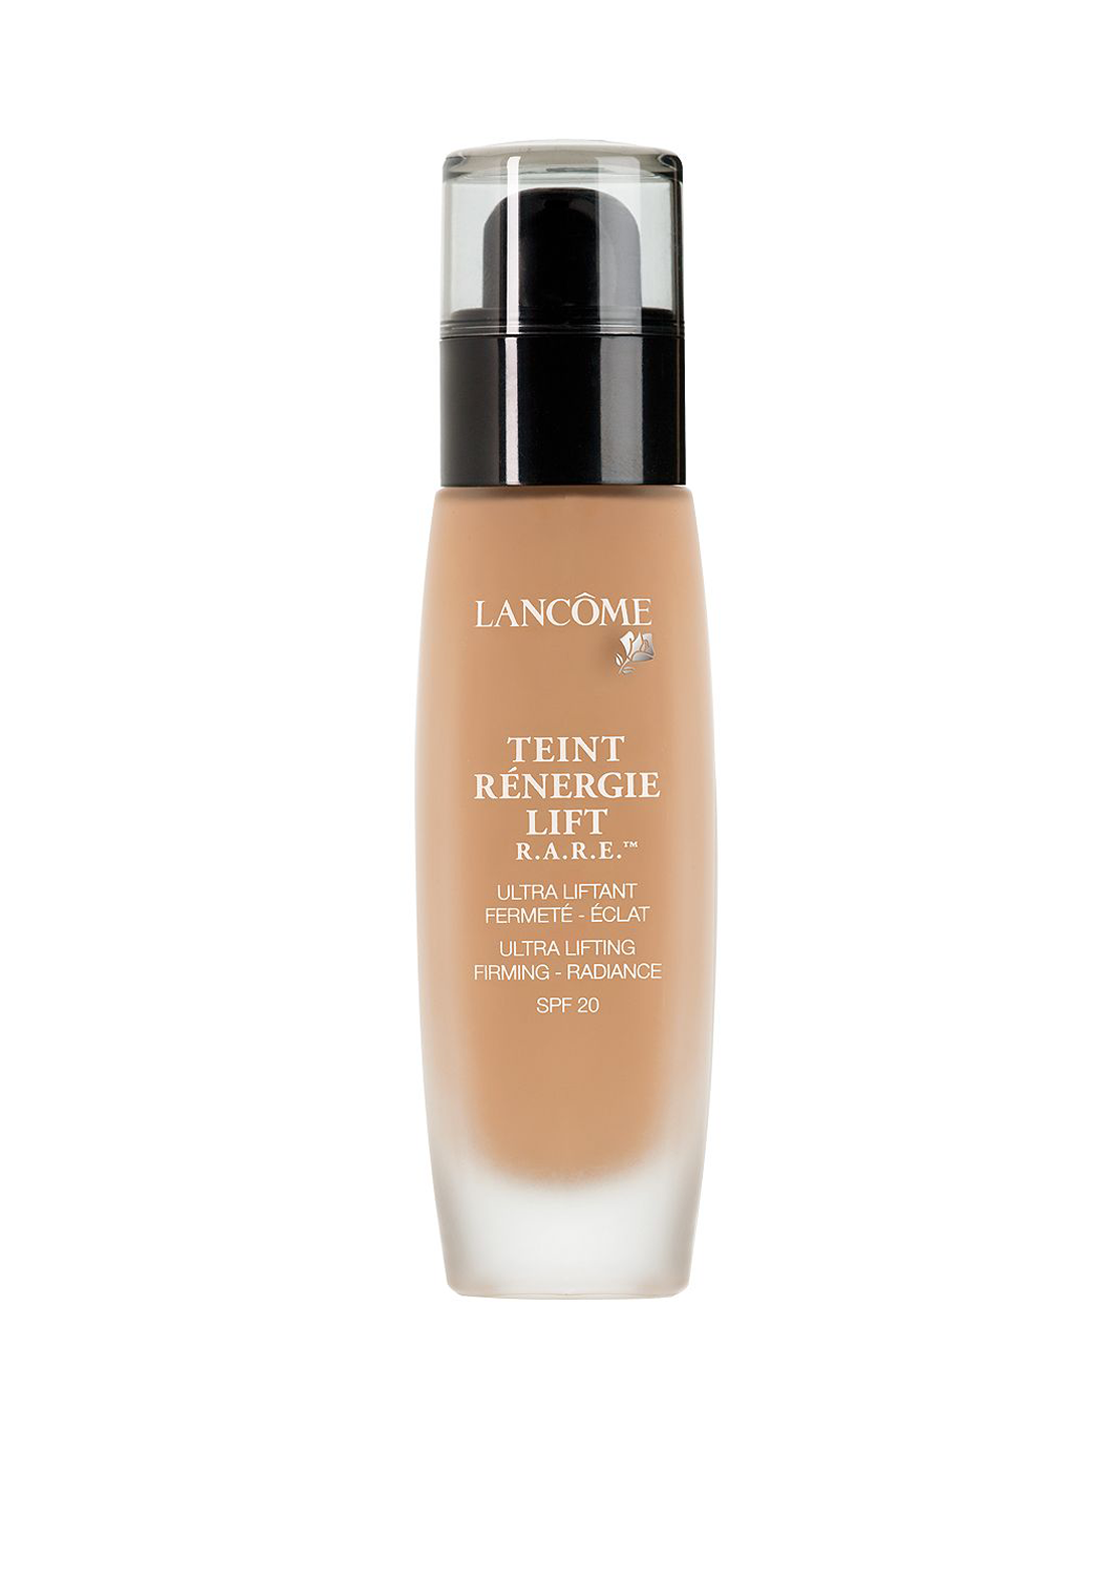 Lancome Teint Renergie Lift R.A.R.E Liquid Foundation with SPF20, 04 Beige Nature